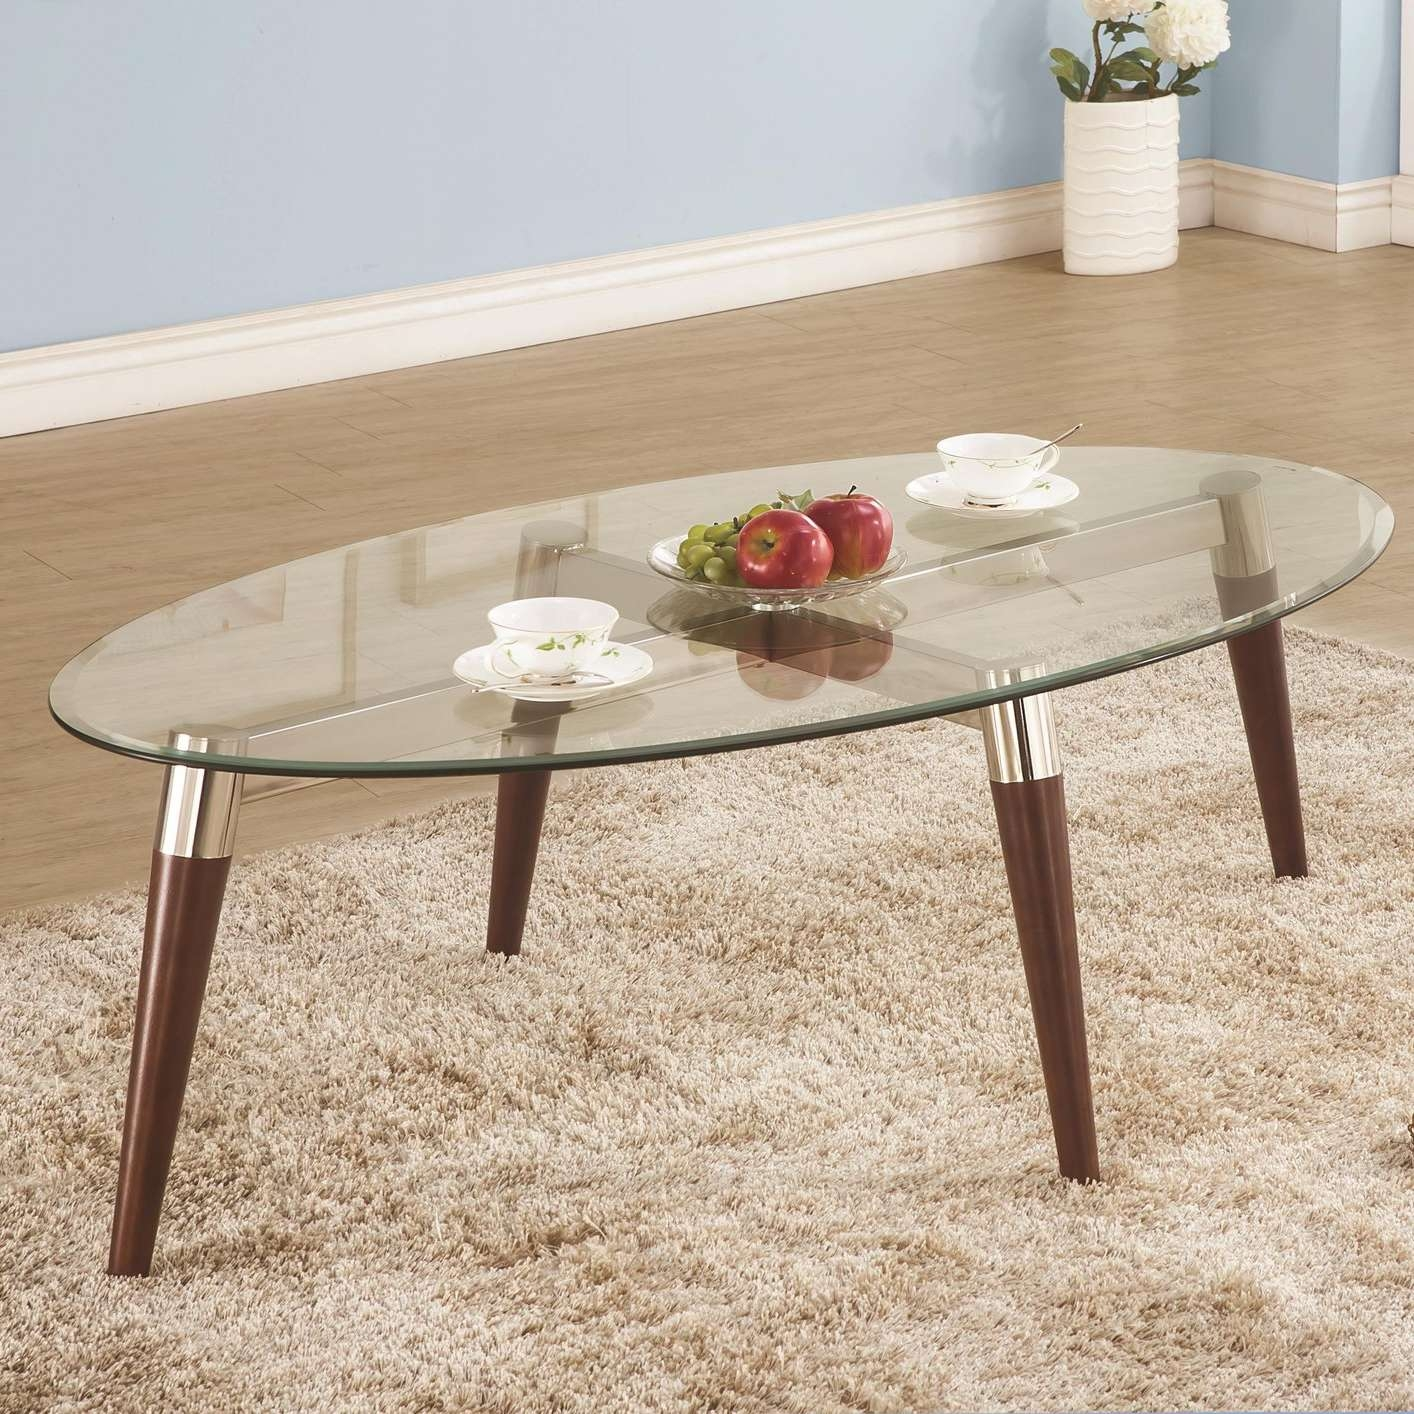 Natalia Brown Glass Coffee Table – Steal A Sofa Furniture Outlet With 2018 Oval Glass And Wood Coffee Tables (View 13 of 20)